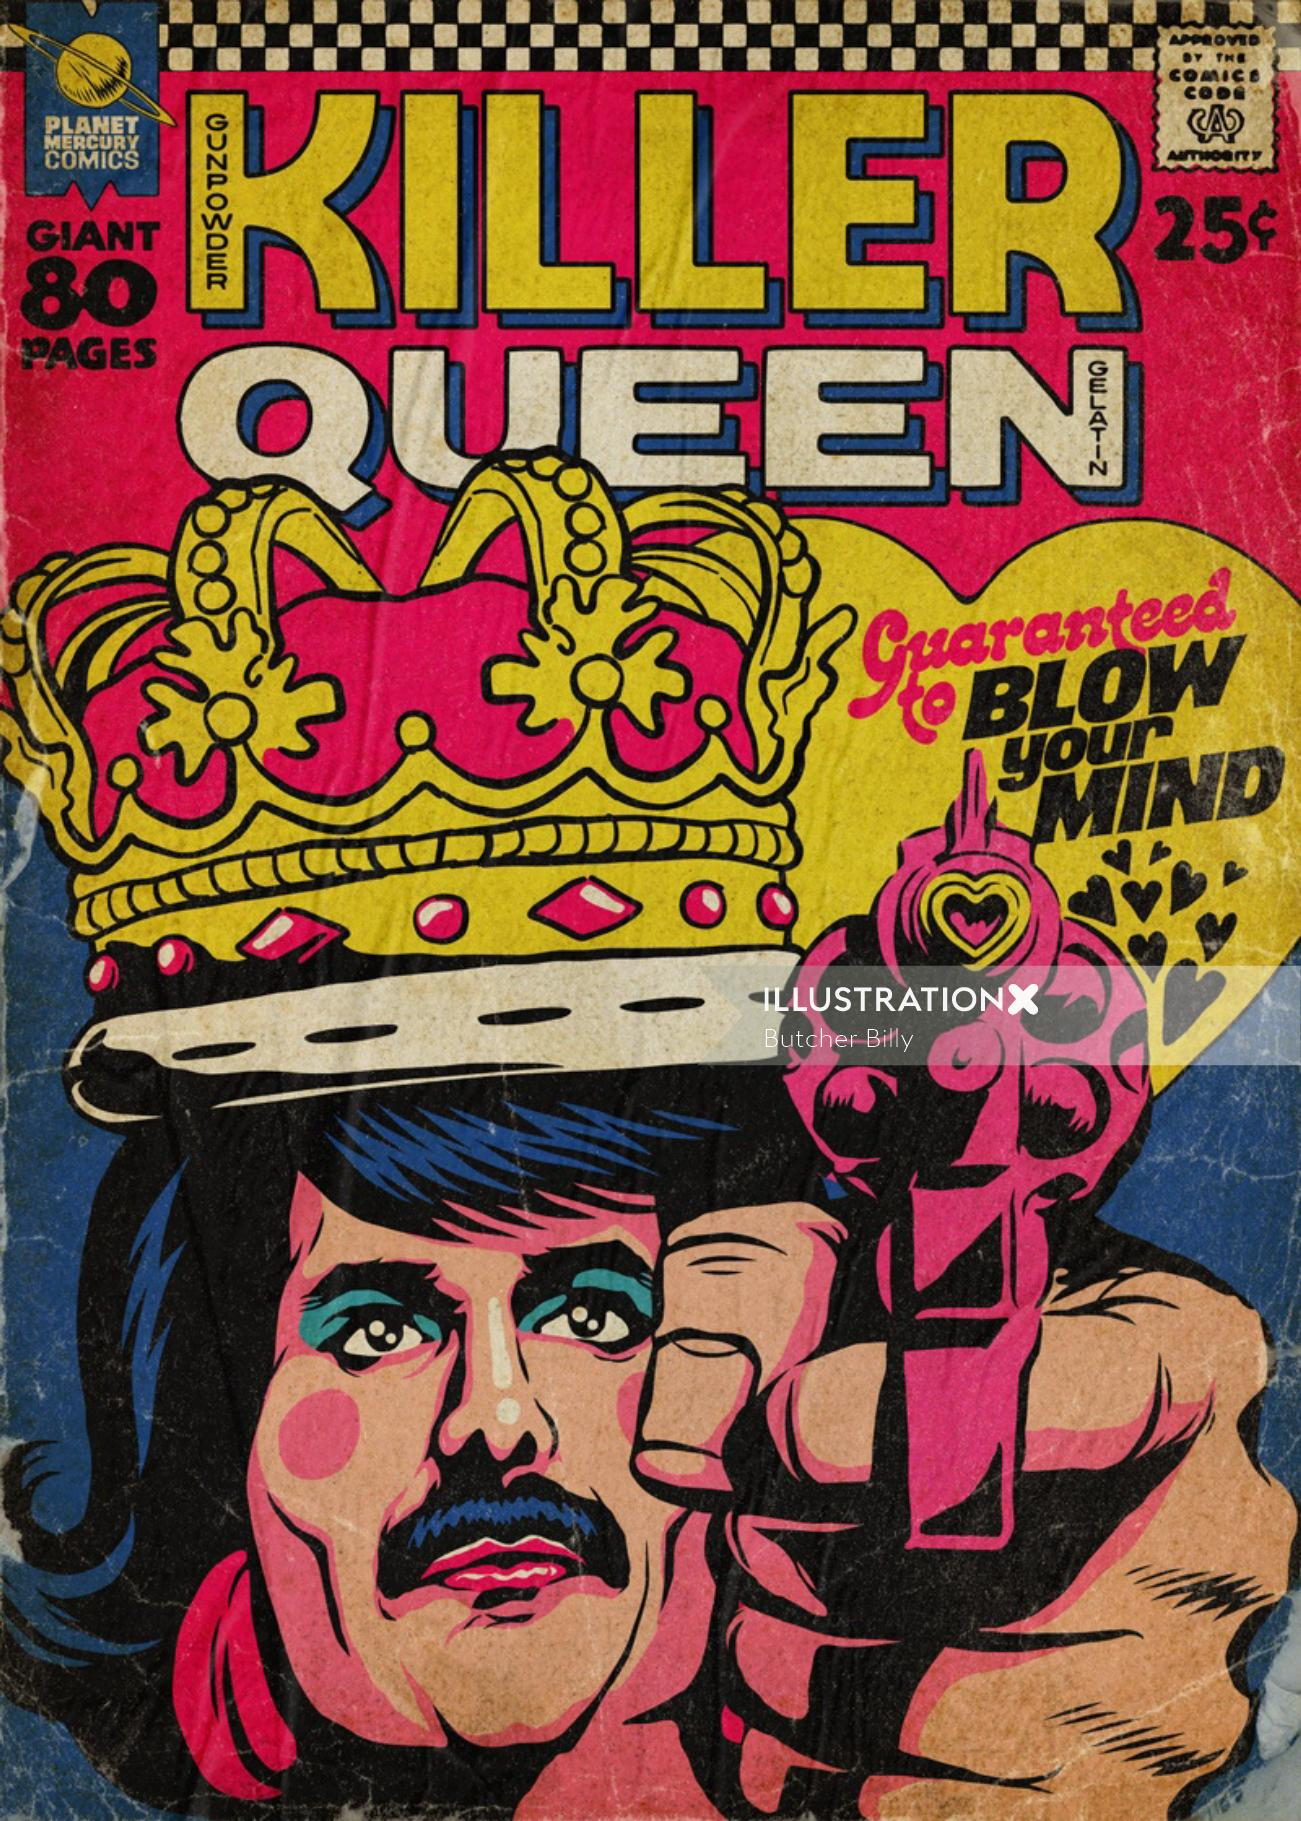 Pop art illustration of Freddie Mercury in a vintage pulp comic book